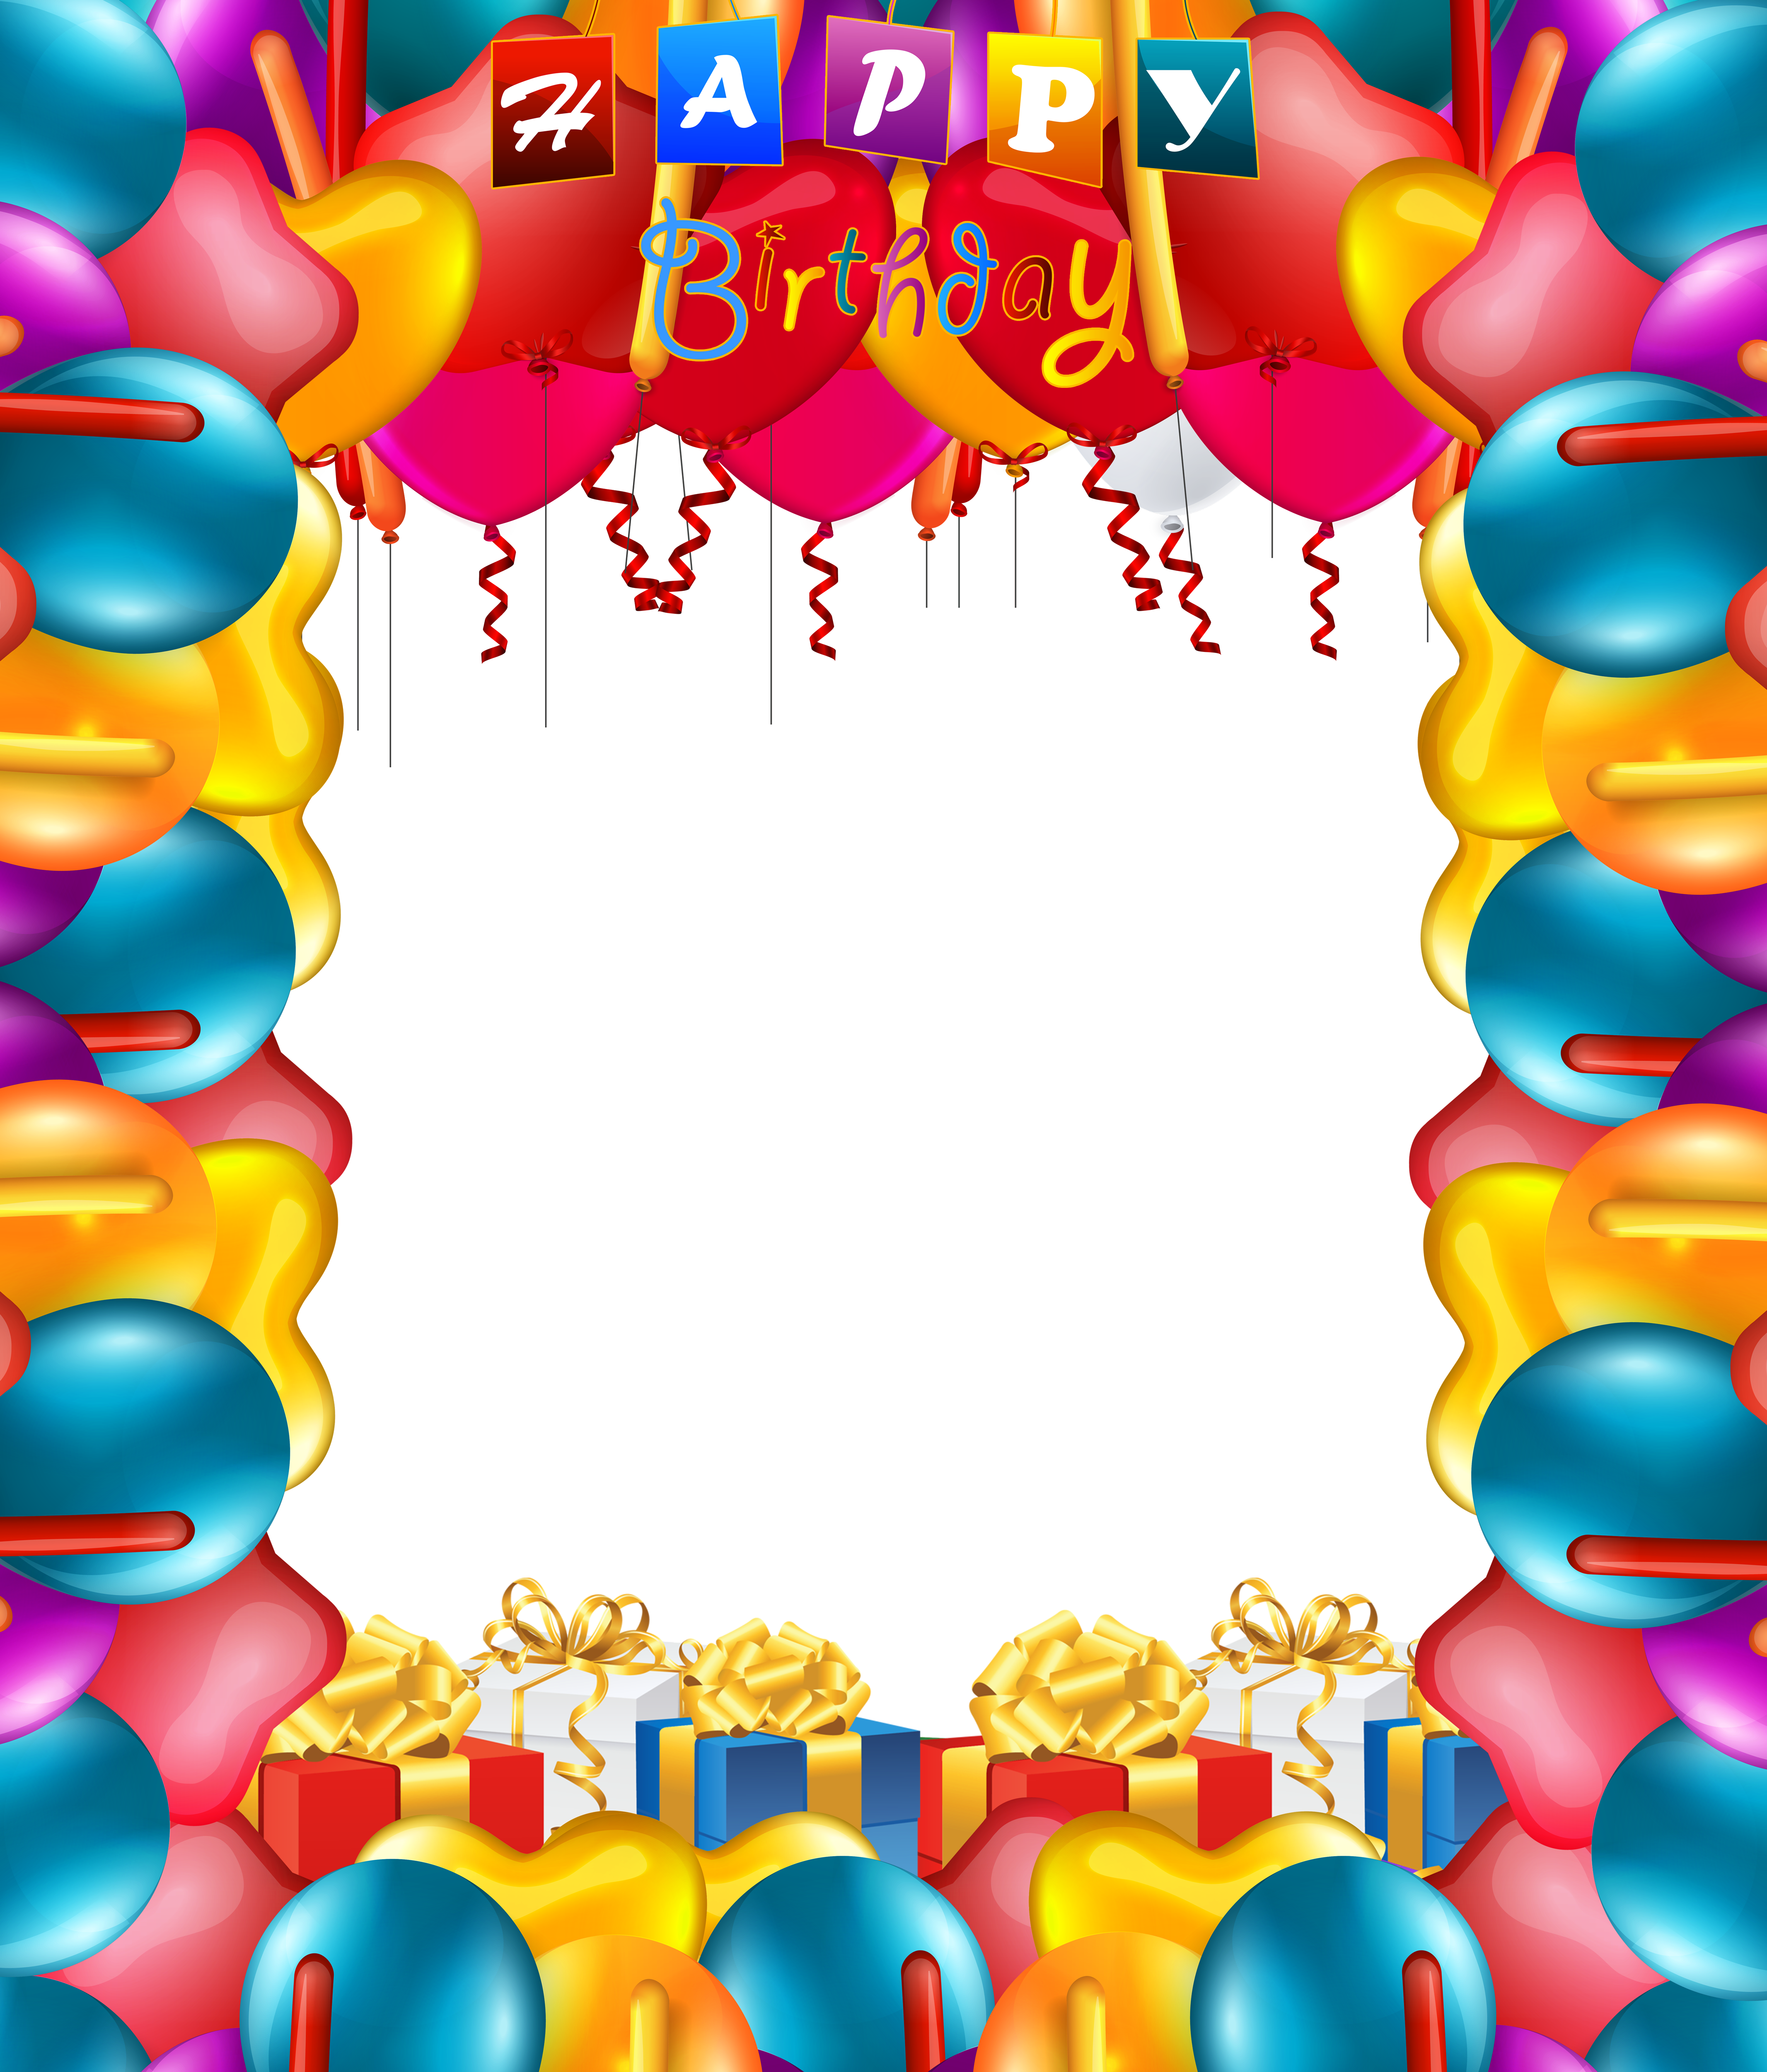 graphic free library Happy birthday balloons transparent. Balloon borders clipart.